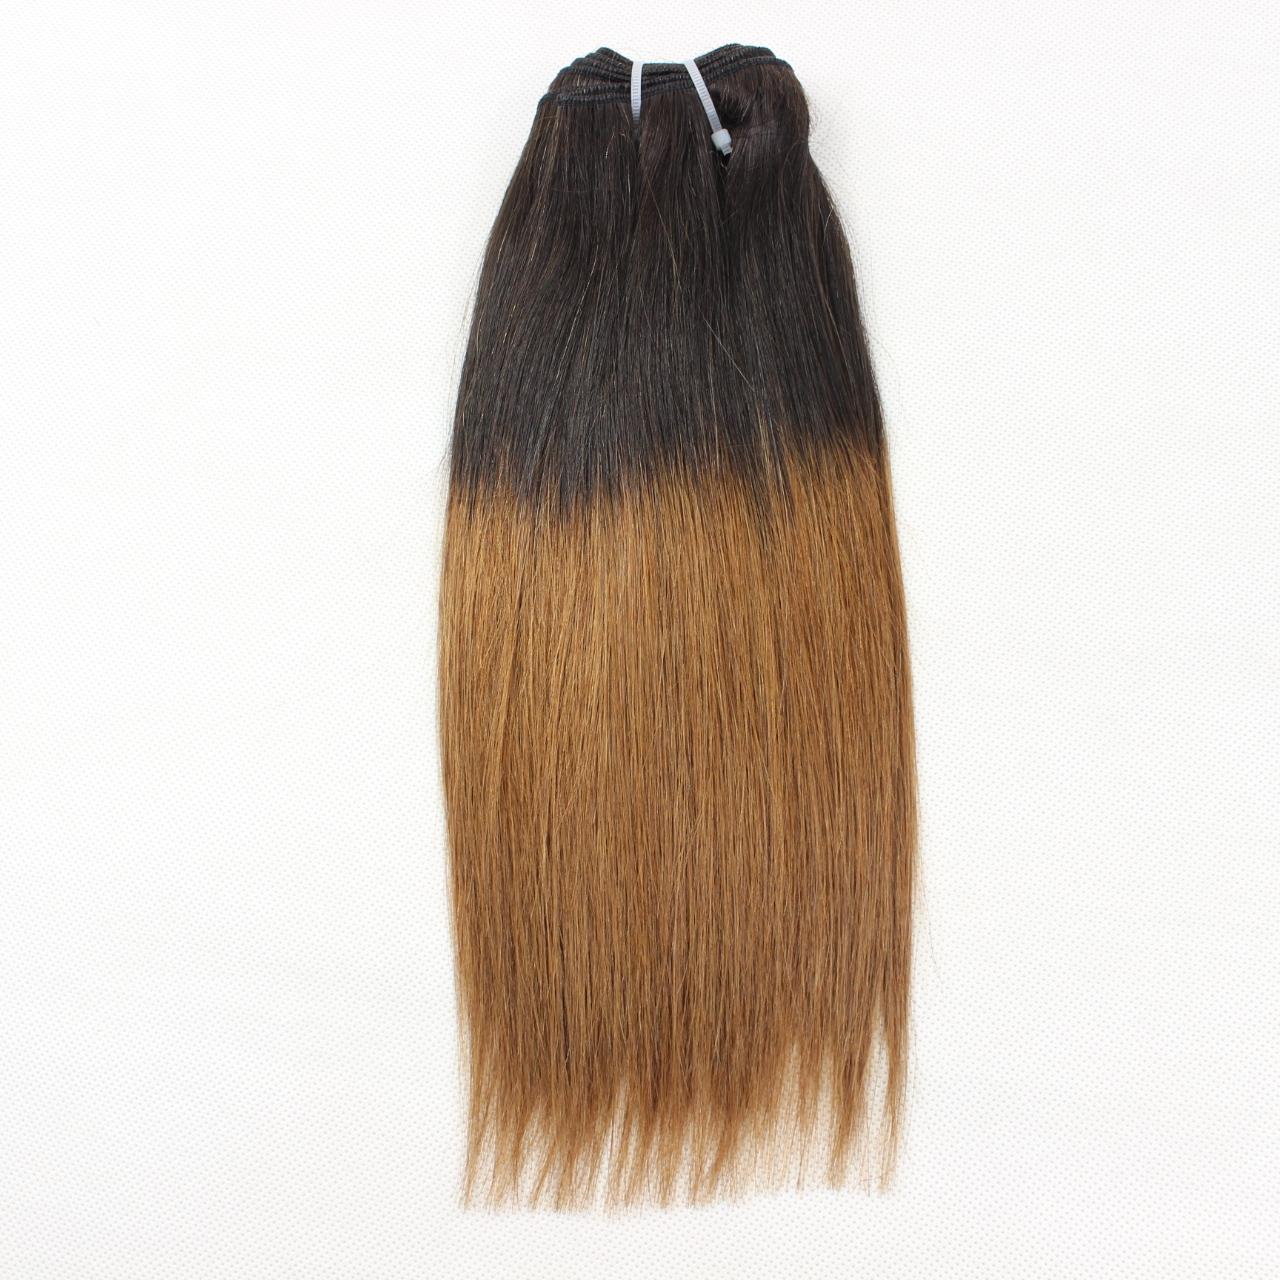 Ombre 1B/Brown 2T Color 100% Human Hair Weft Extensions YL167